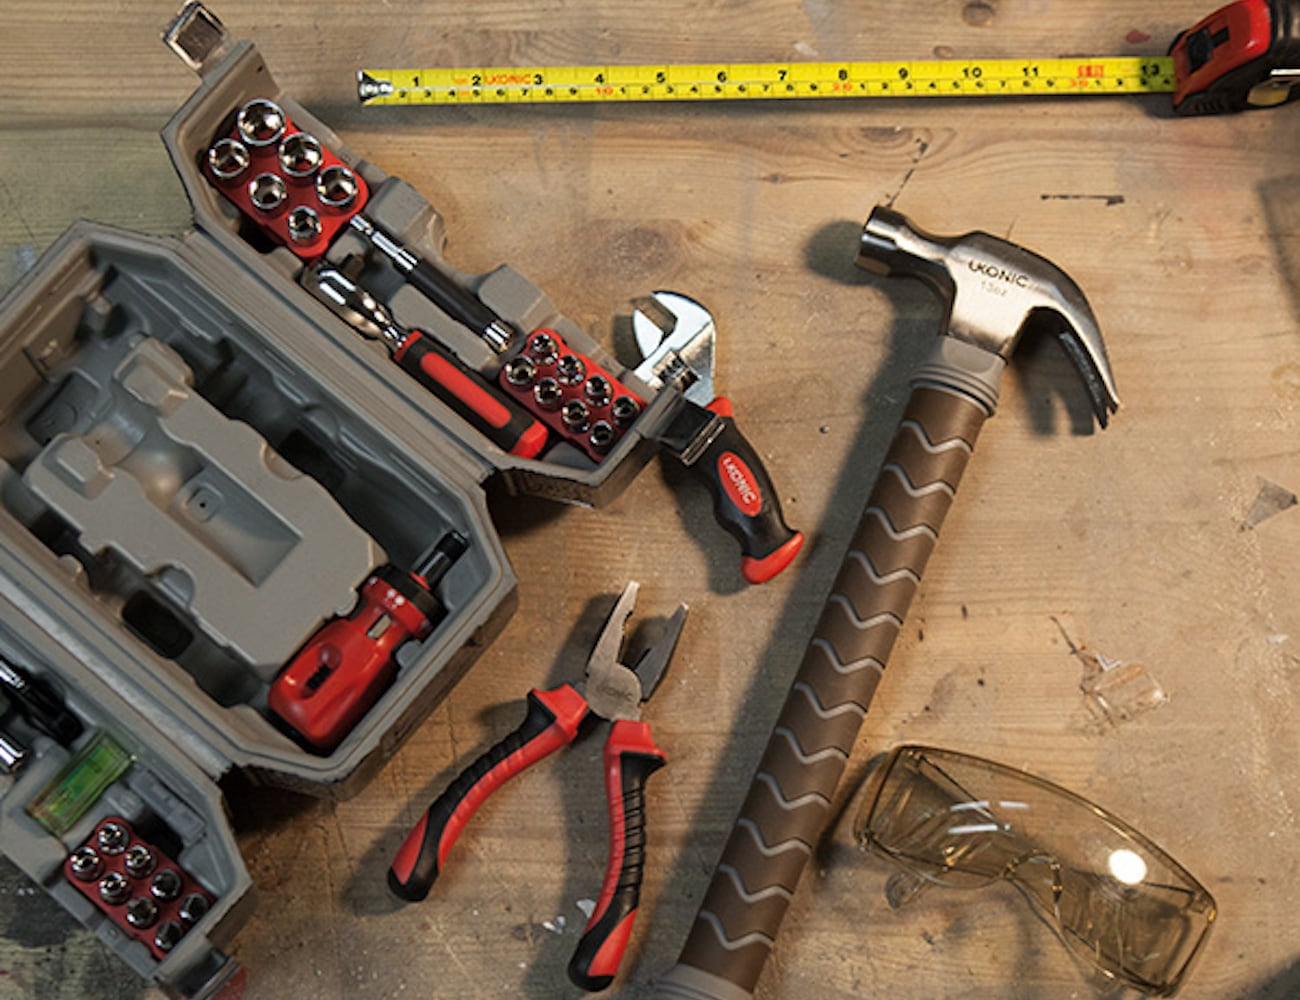 ThinkGeek Marvel Thor Hammer Tool Set